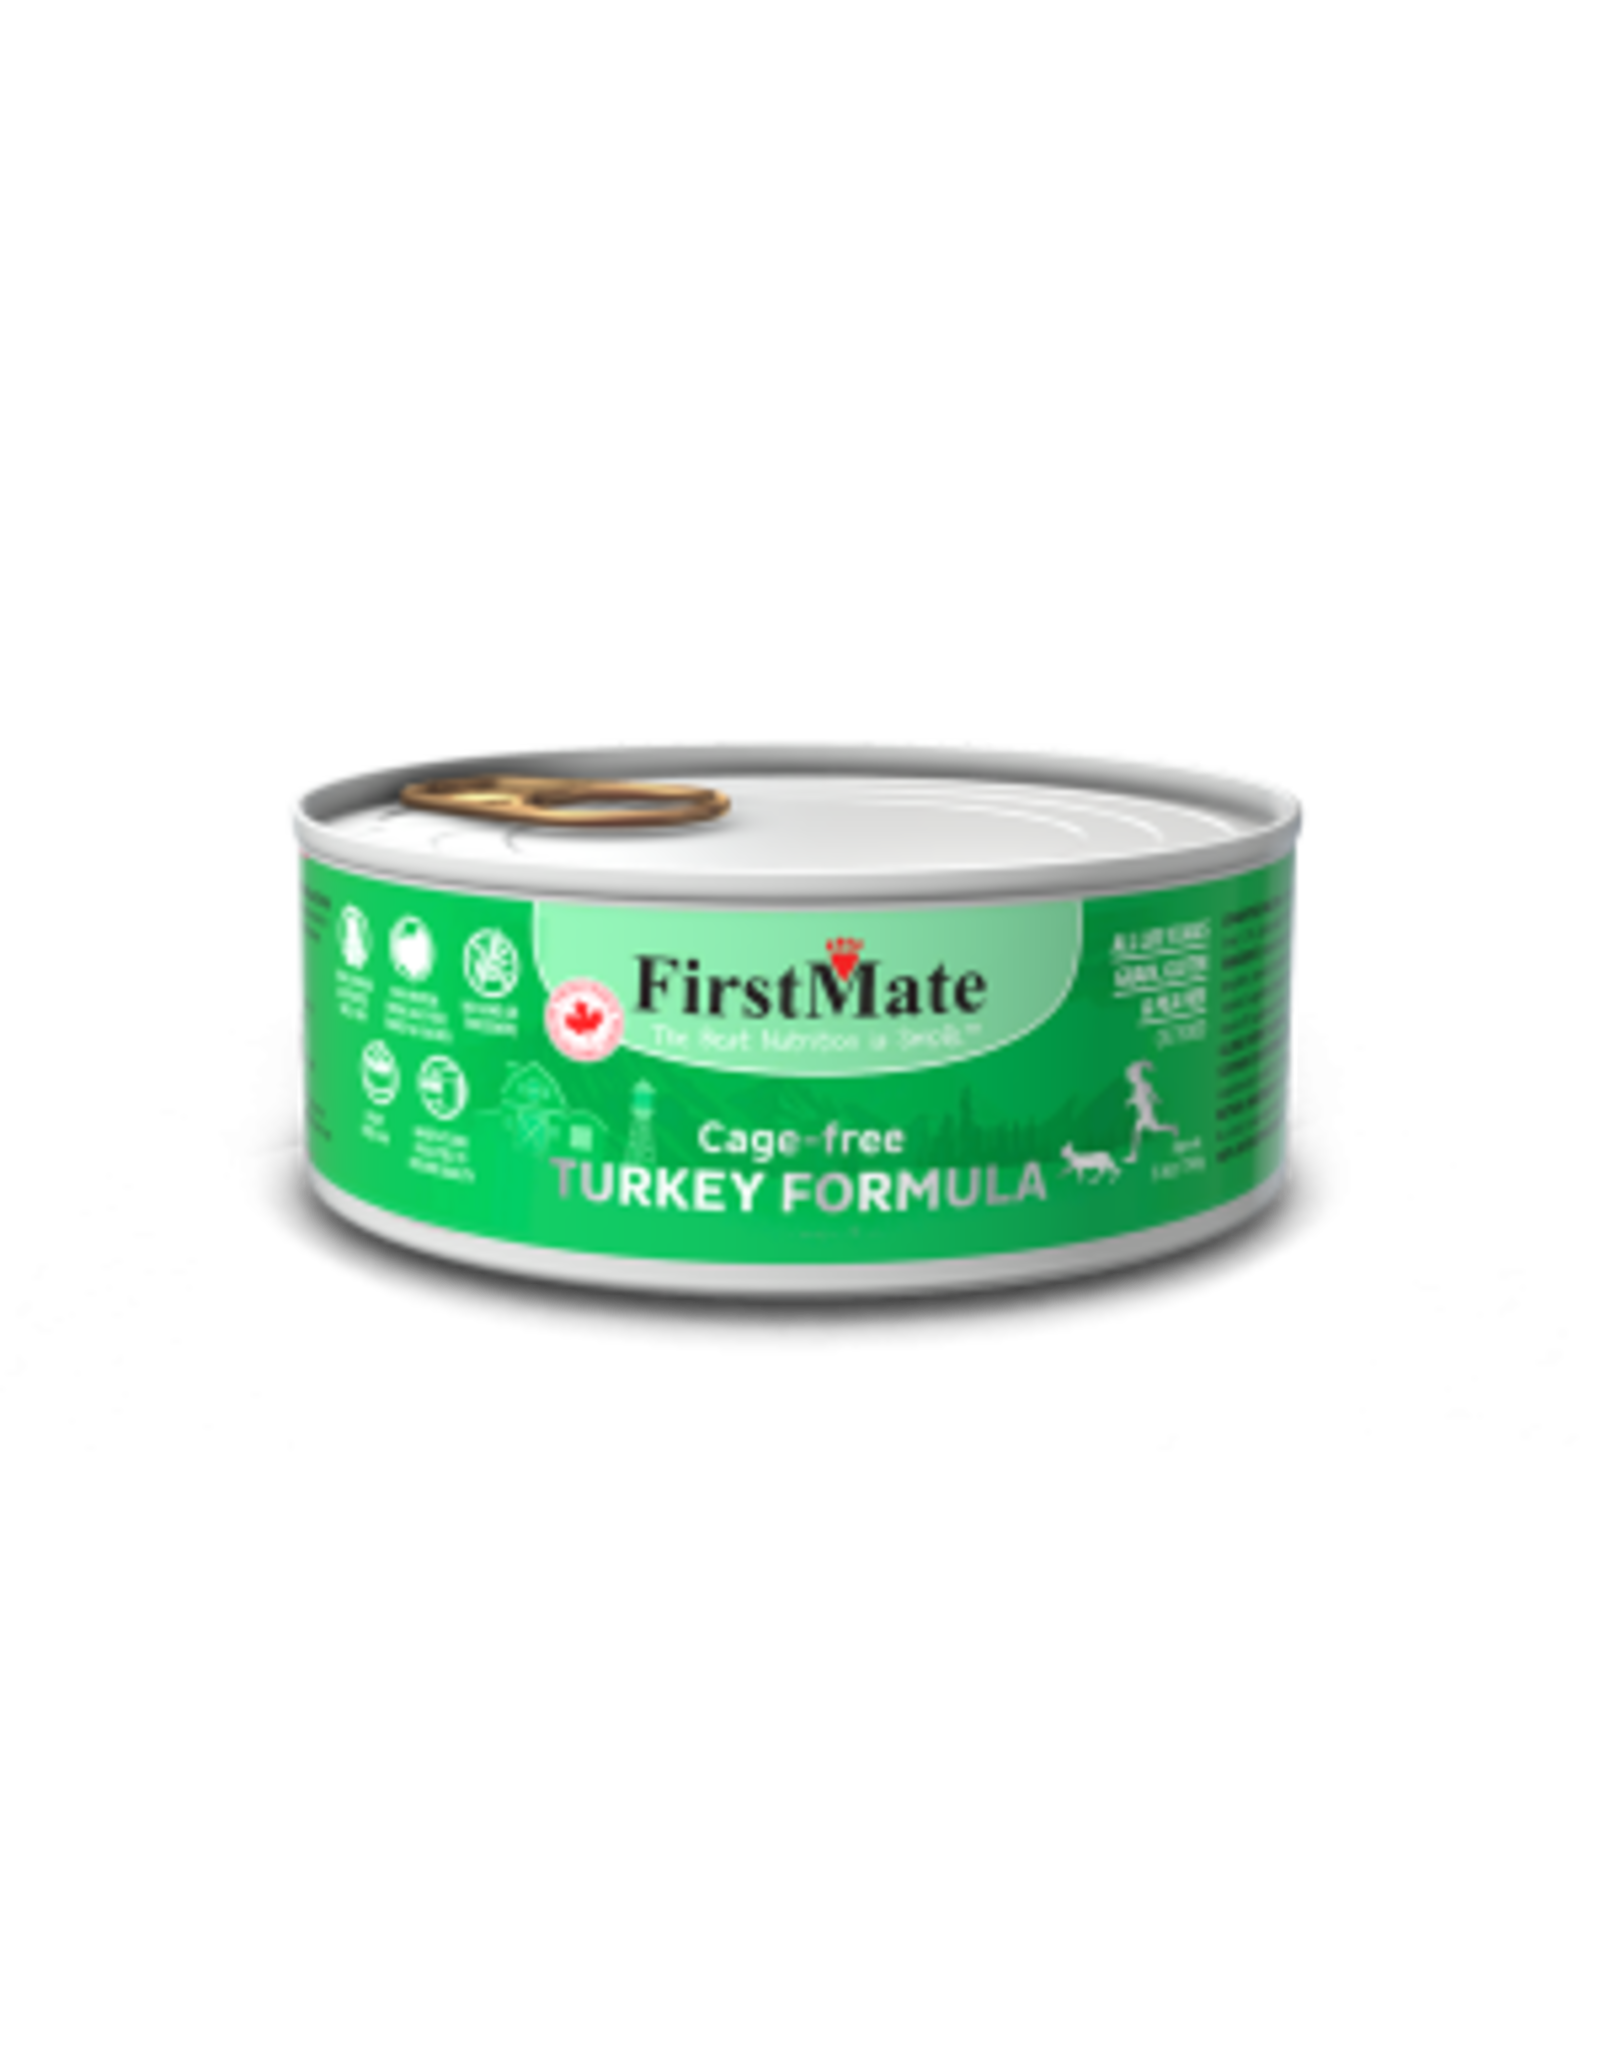 FirstMate FirstMate Cat - Turkey 5.5oz